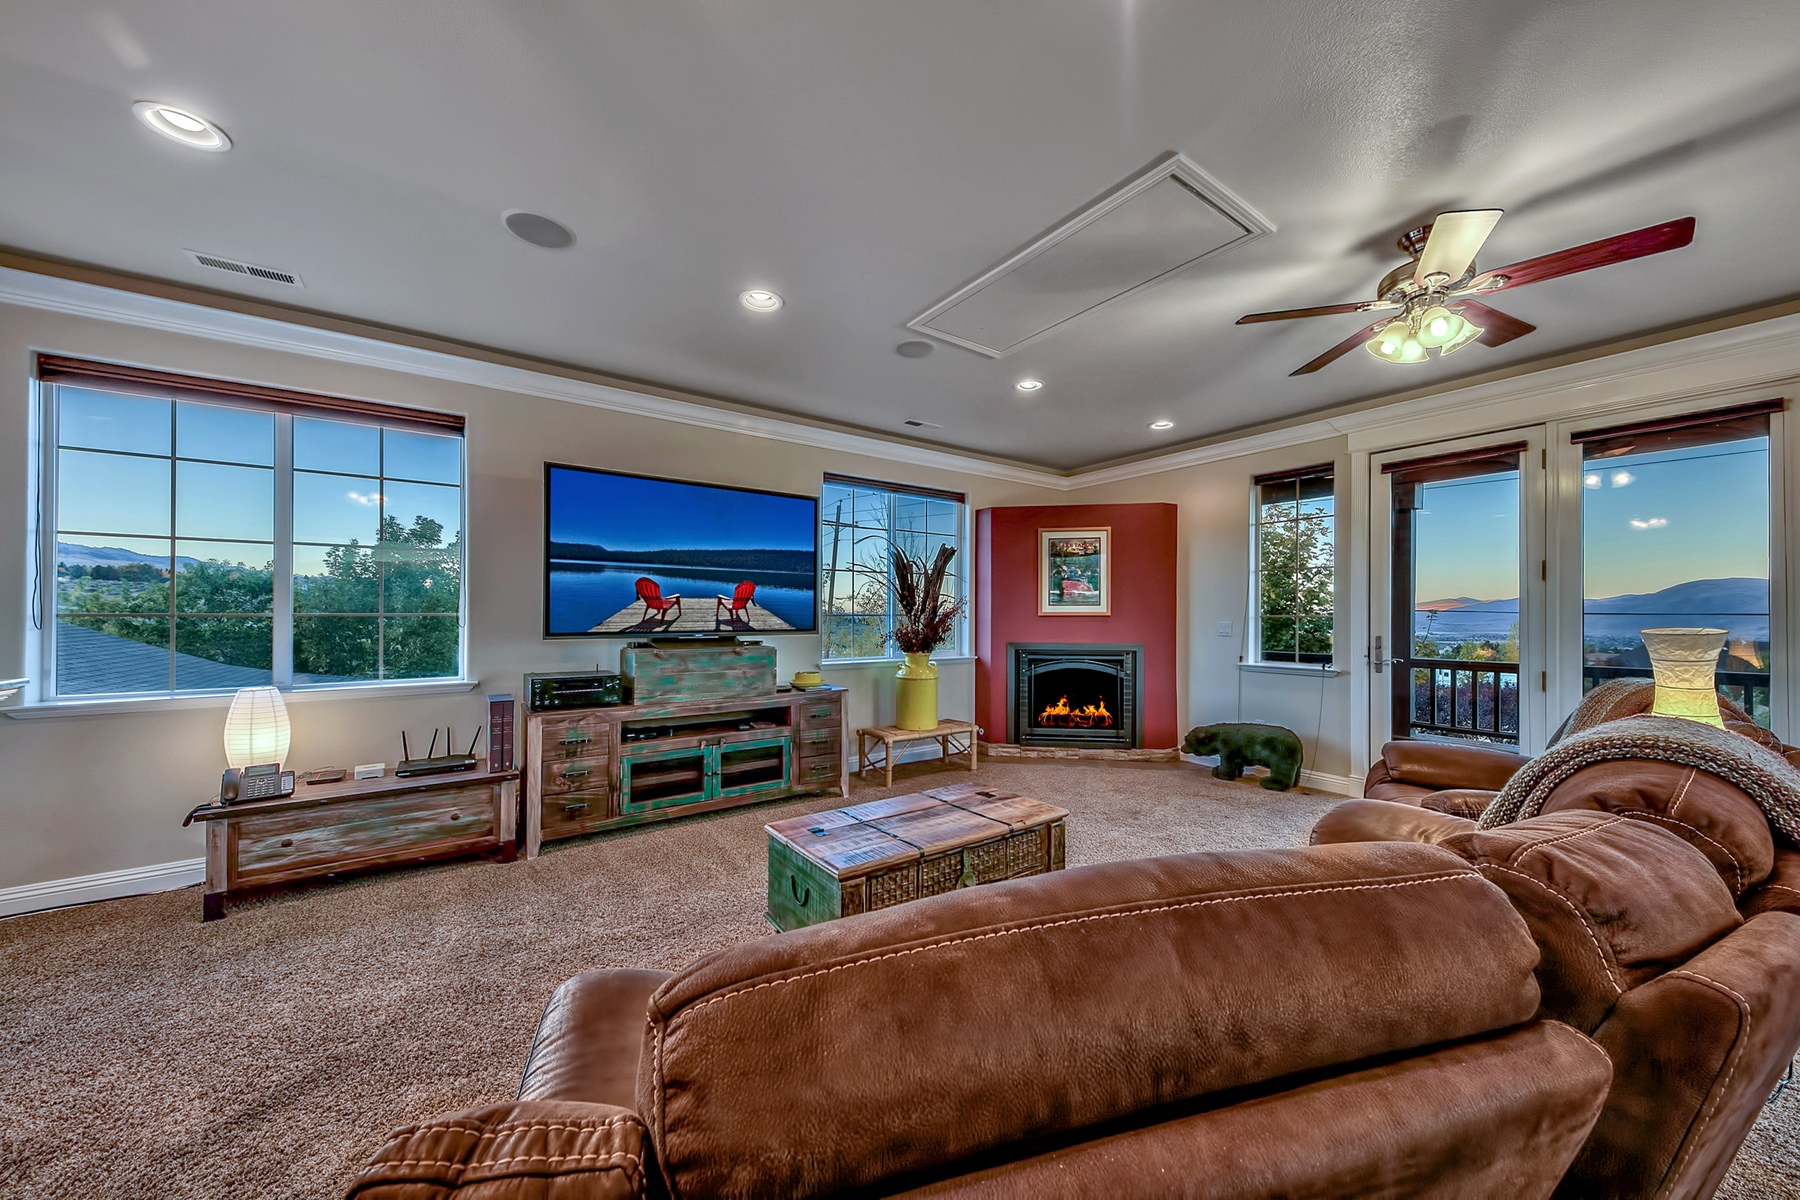 Additional photo for property listing at 14095 Torvinen Way, Reno, Nv 89511 14095 Torvinen Way 里诺, 内华达州 89511 美国